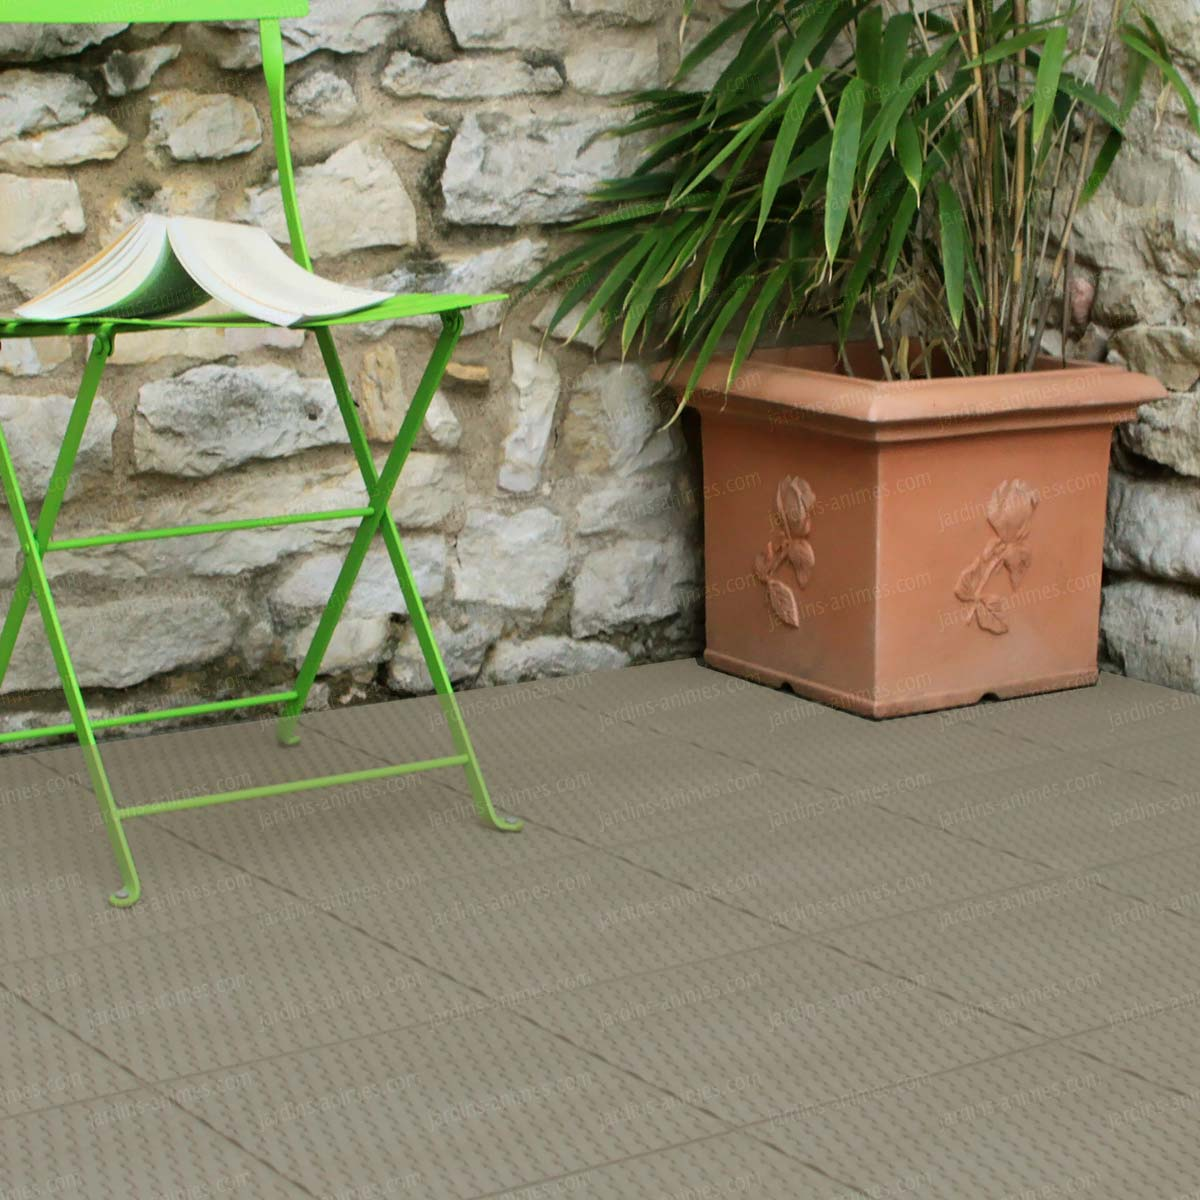 Dalle de jardin clipsable en plastique all e chemin gravier - Dalle plastique terrasse ...